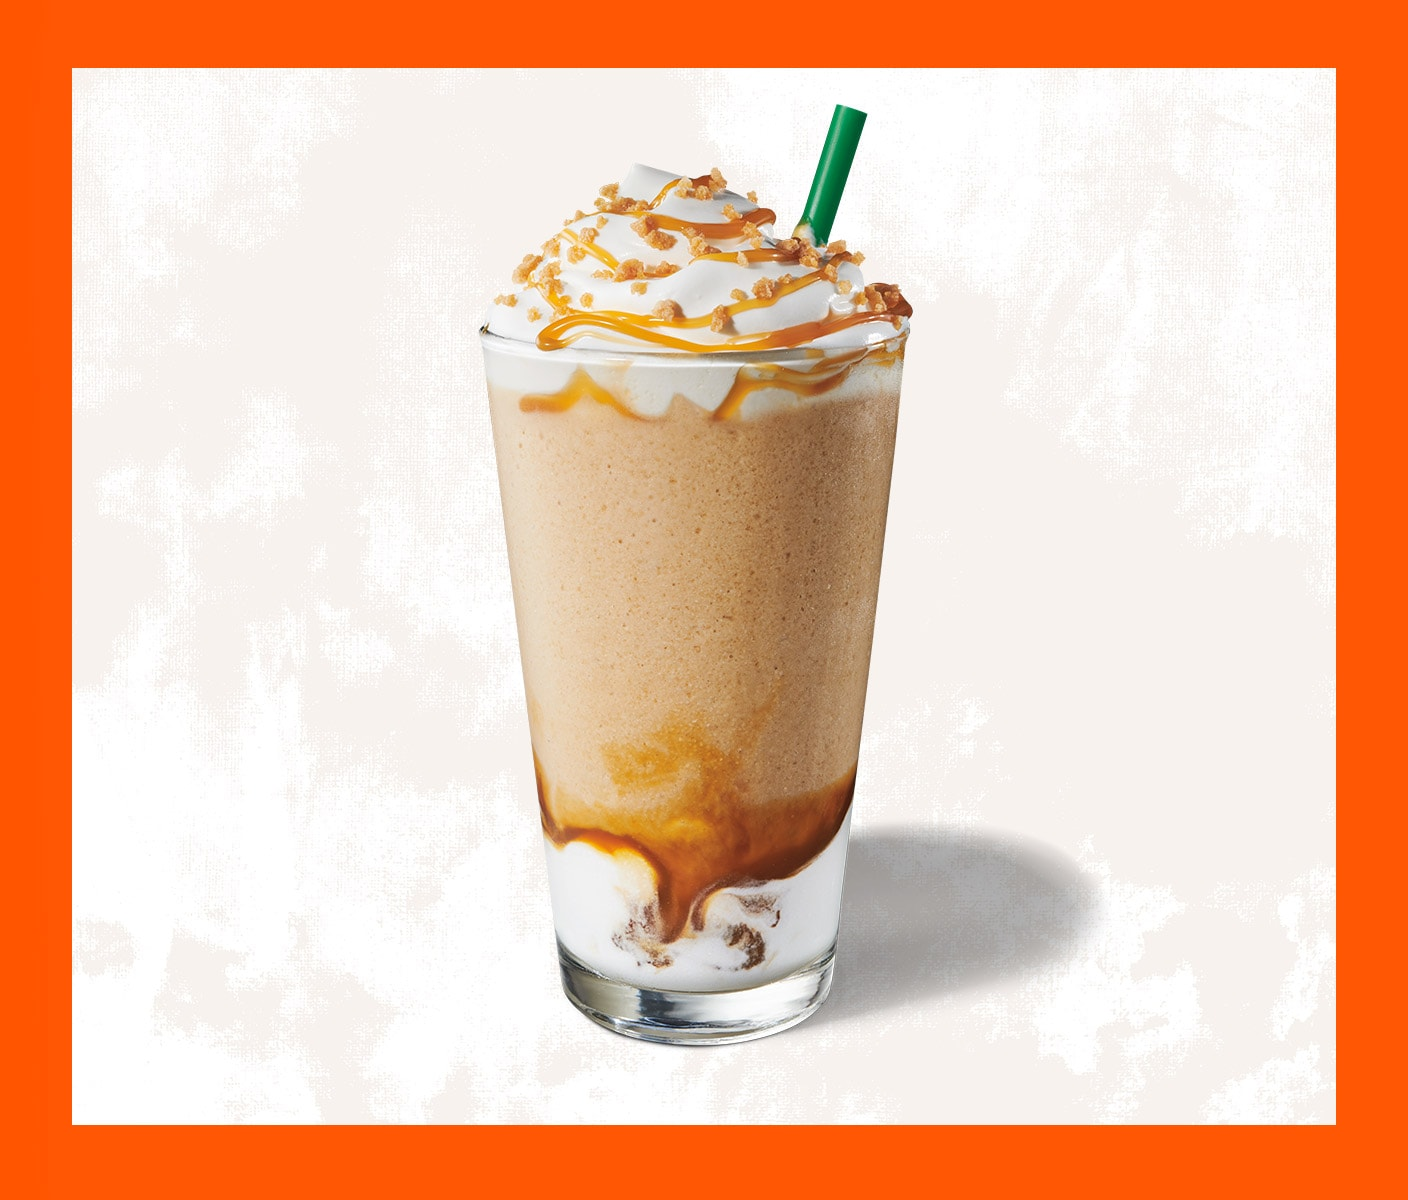 Blended coffee drink with whip cream in a tall glass.